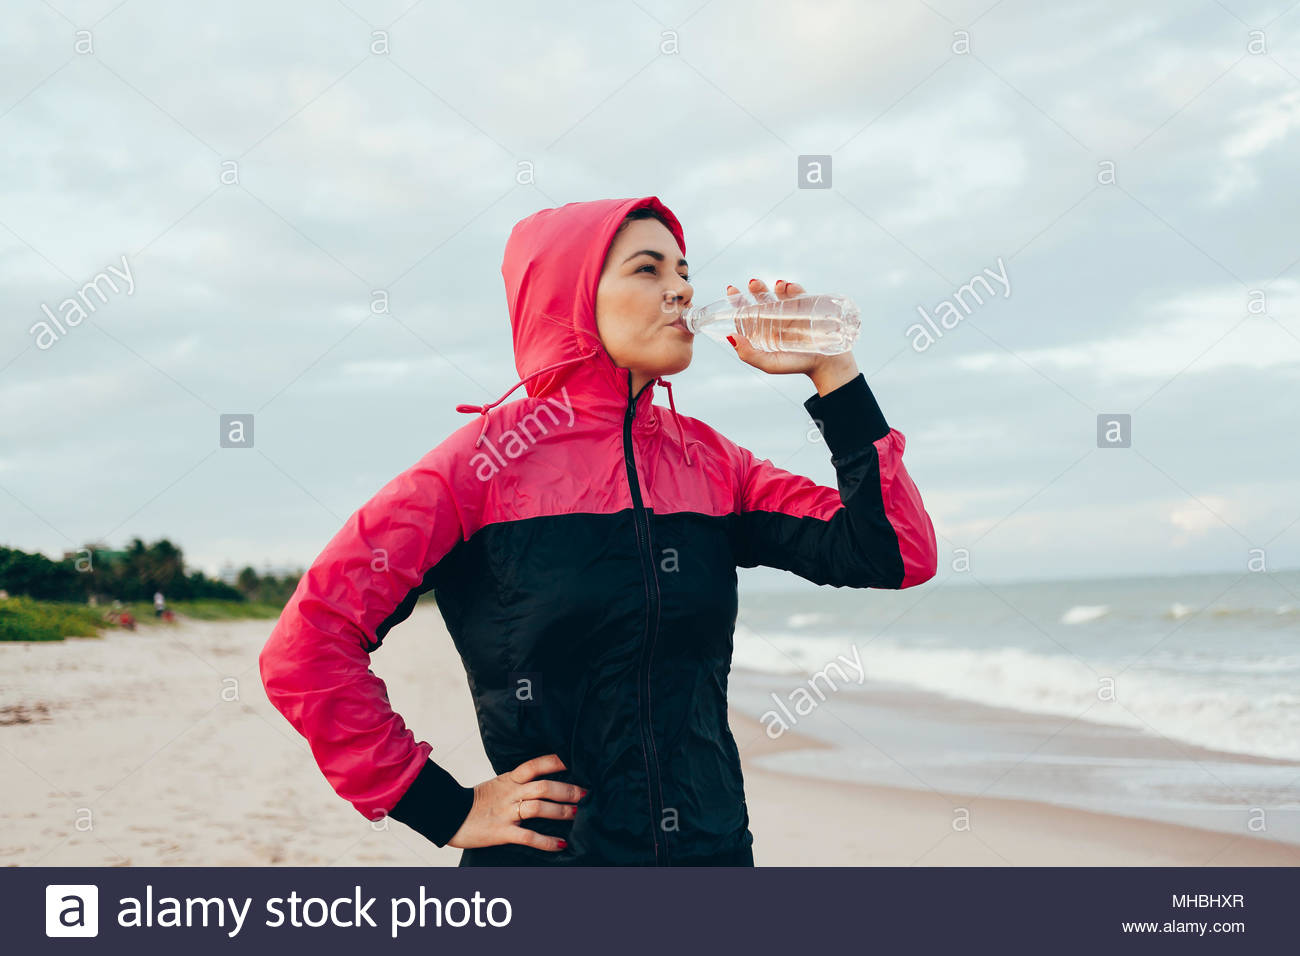 Fitness runner woman drinking water of a sport bottle. Athlete girl taking a break during run to hydrate during hot summer exercise on beach. Healthy  - Stock Image